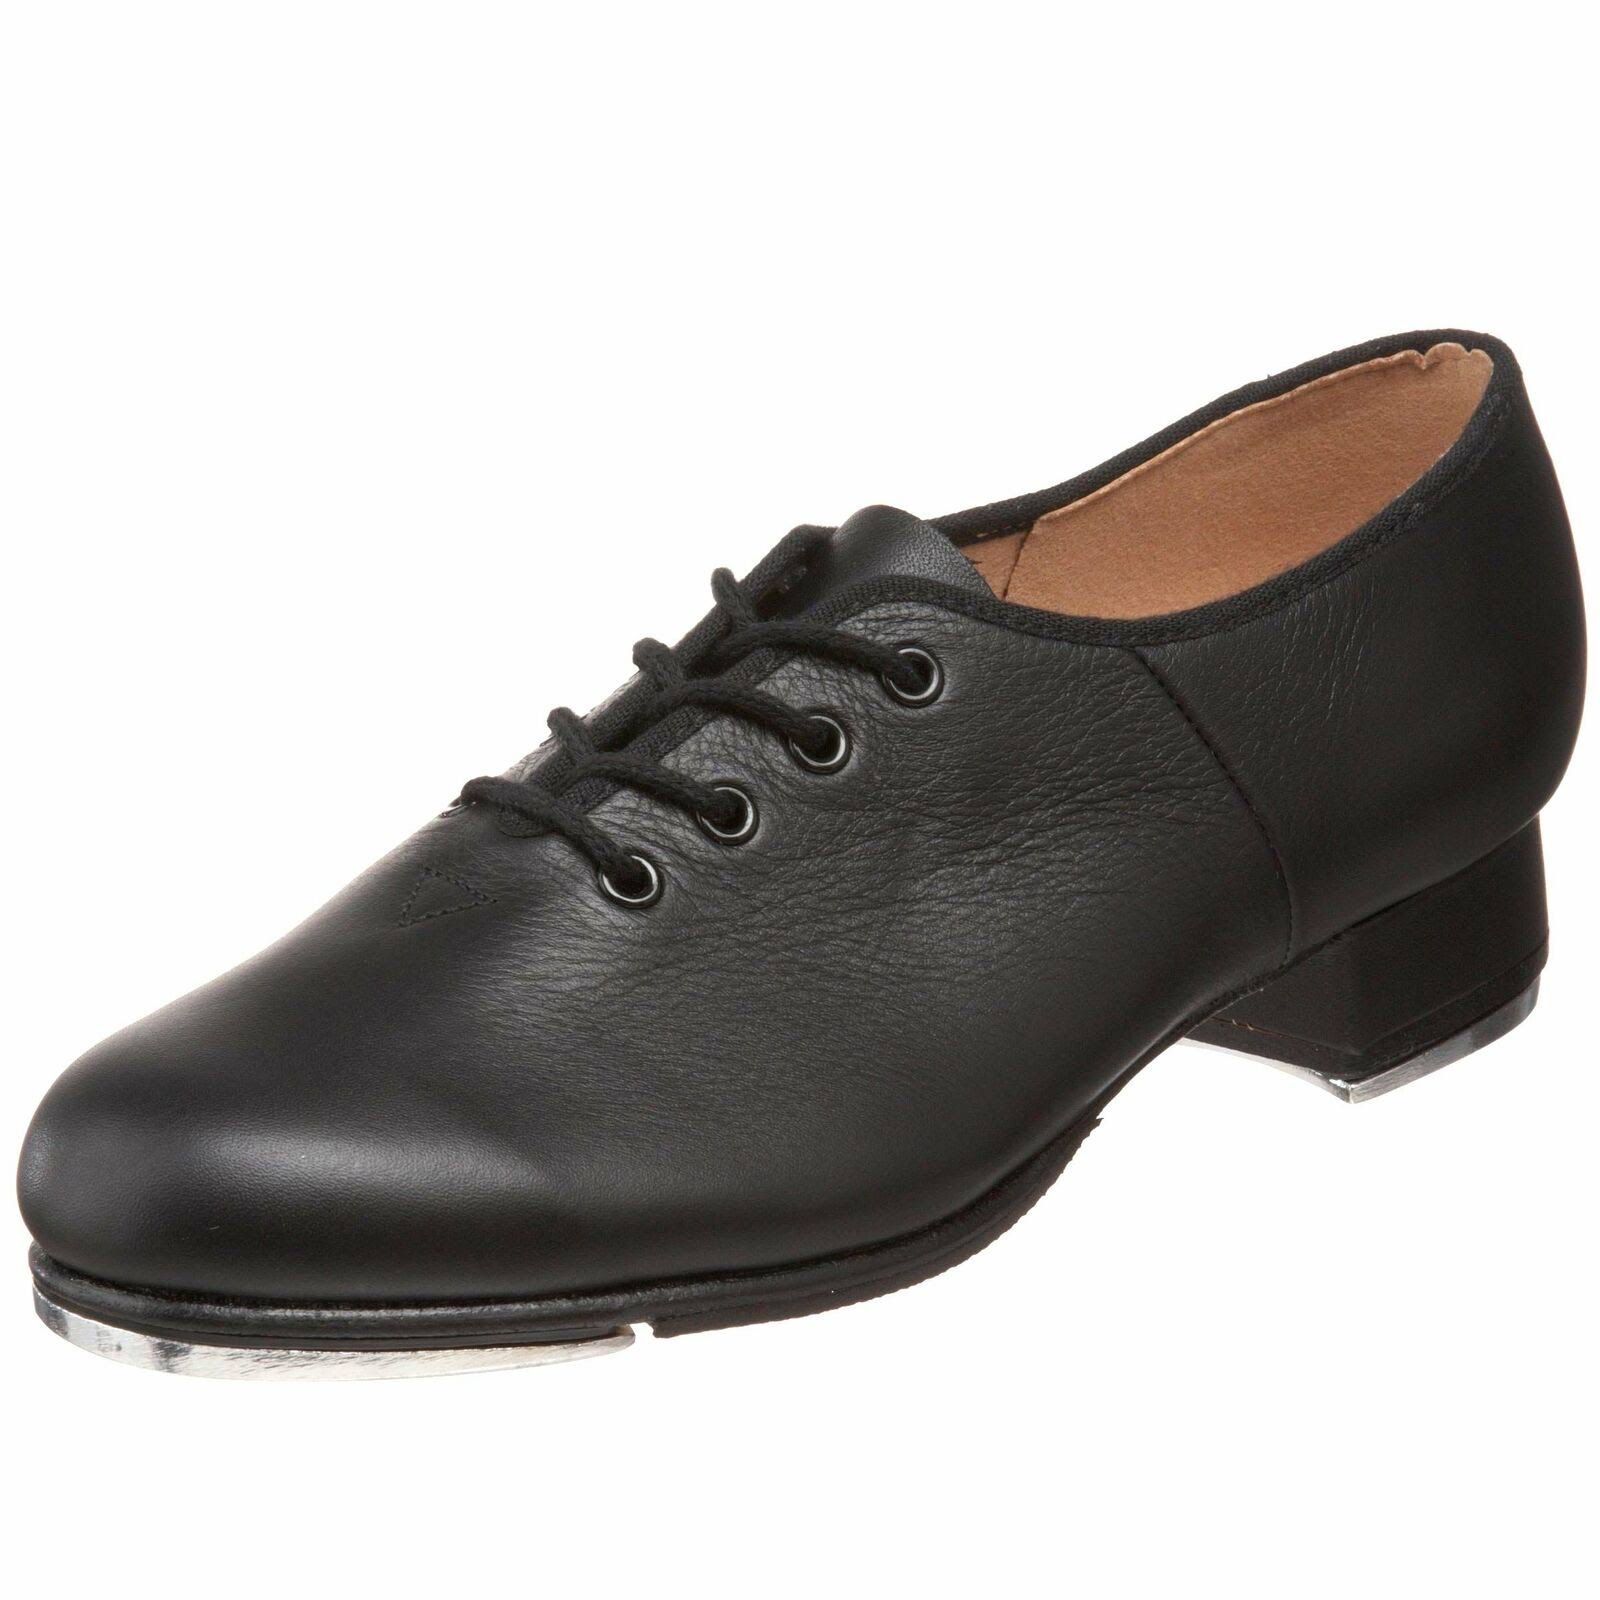 Bloch Dance Women's Jazz Tap Tap Shoe - Black, 8 US